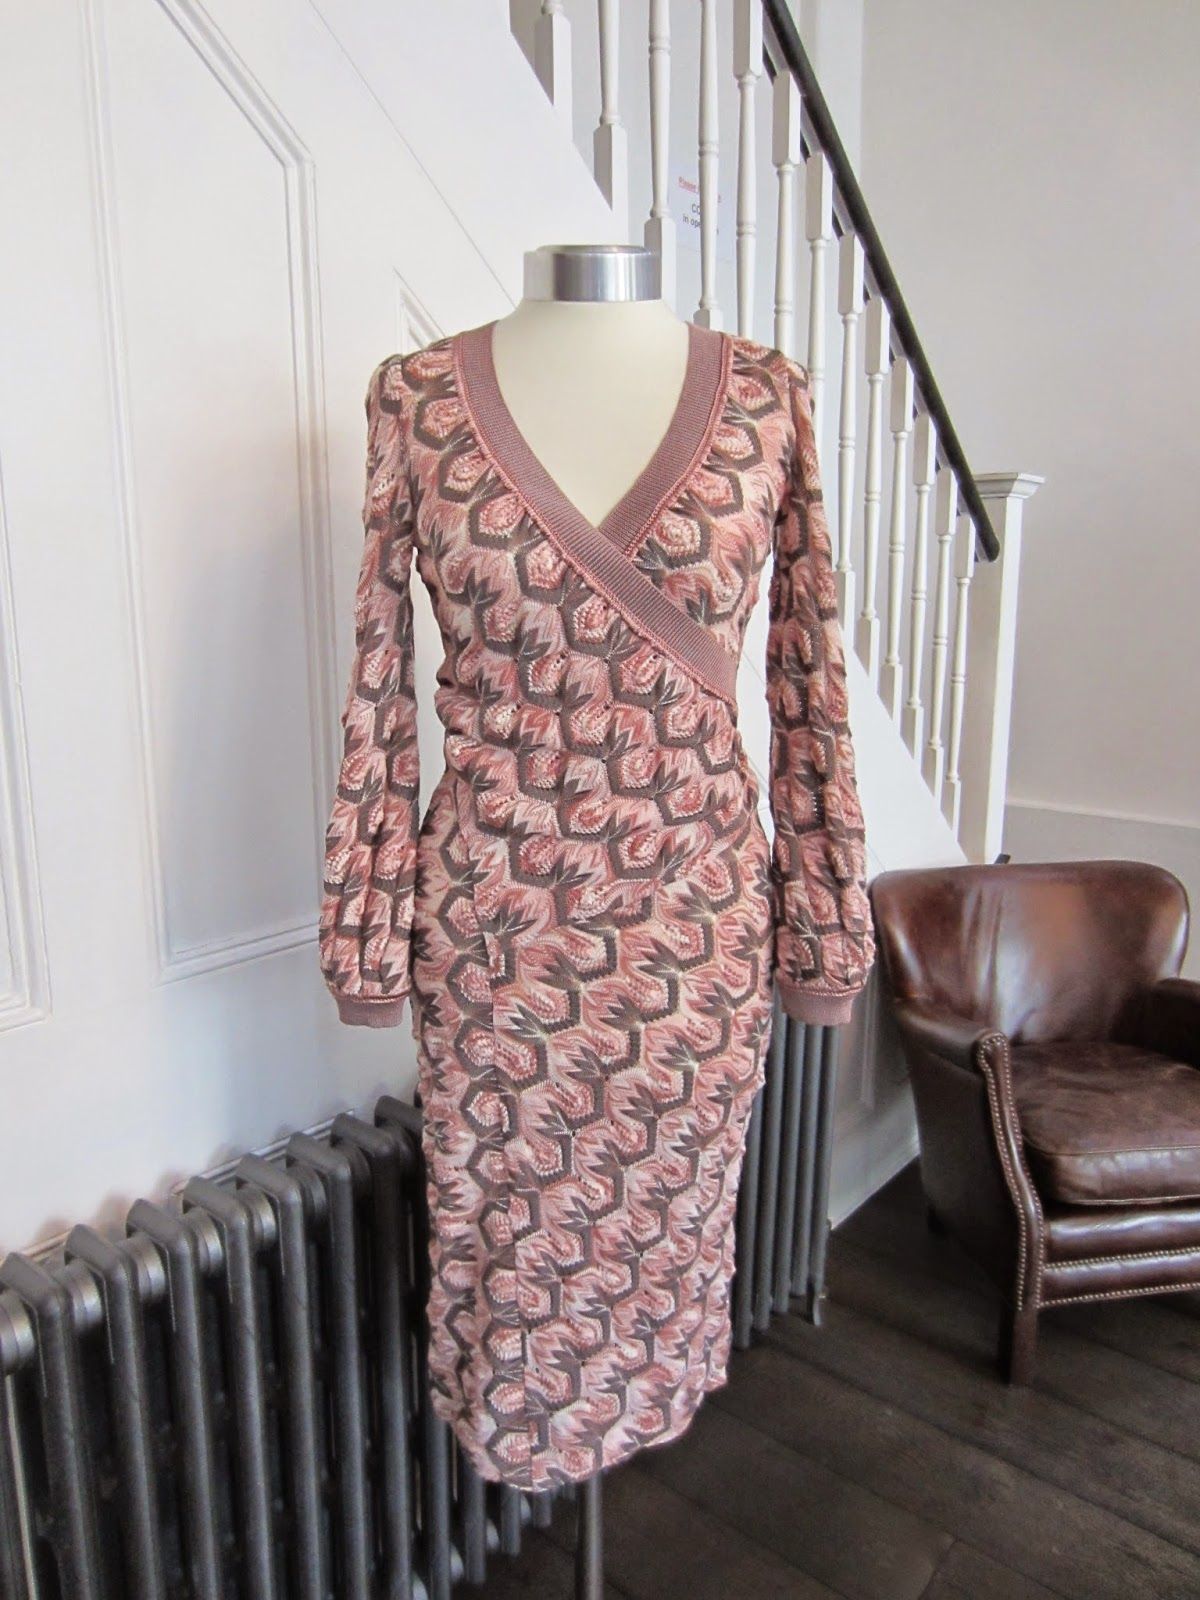 Missoni Pink & Taupe Patterned Dress